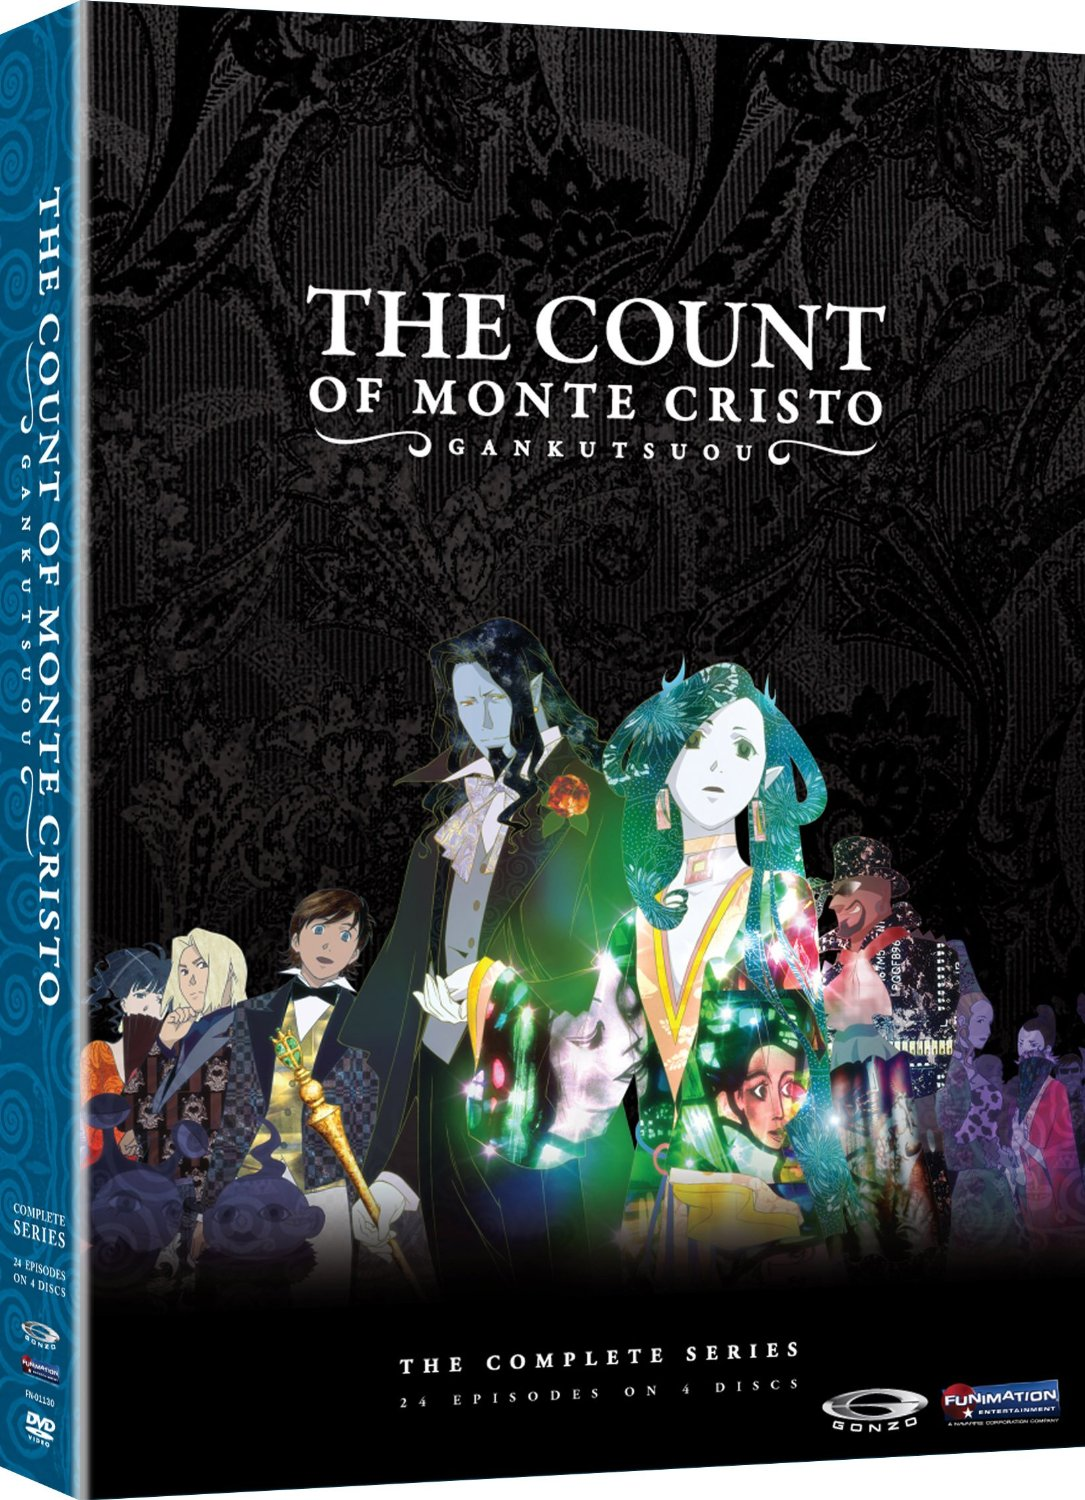 essays on the count of monte cristo movie Essays on the count of monte cristo movie antithesis in where i lived and what i lived for assayas, richard linklater, peter bogdanovich, and paul sc i'll text you.